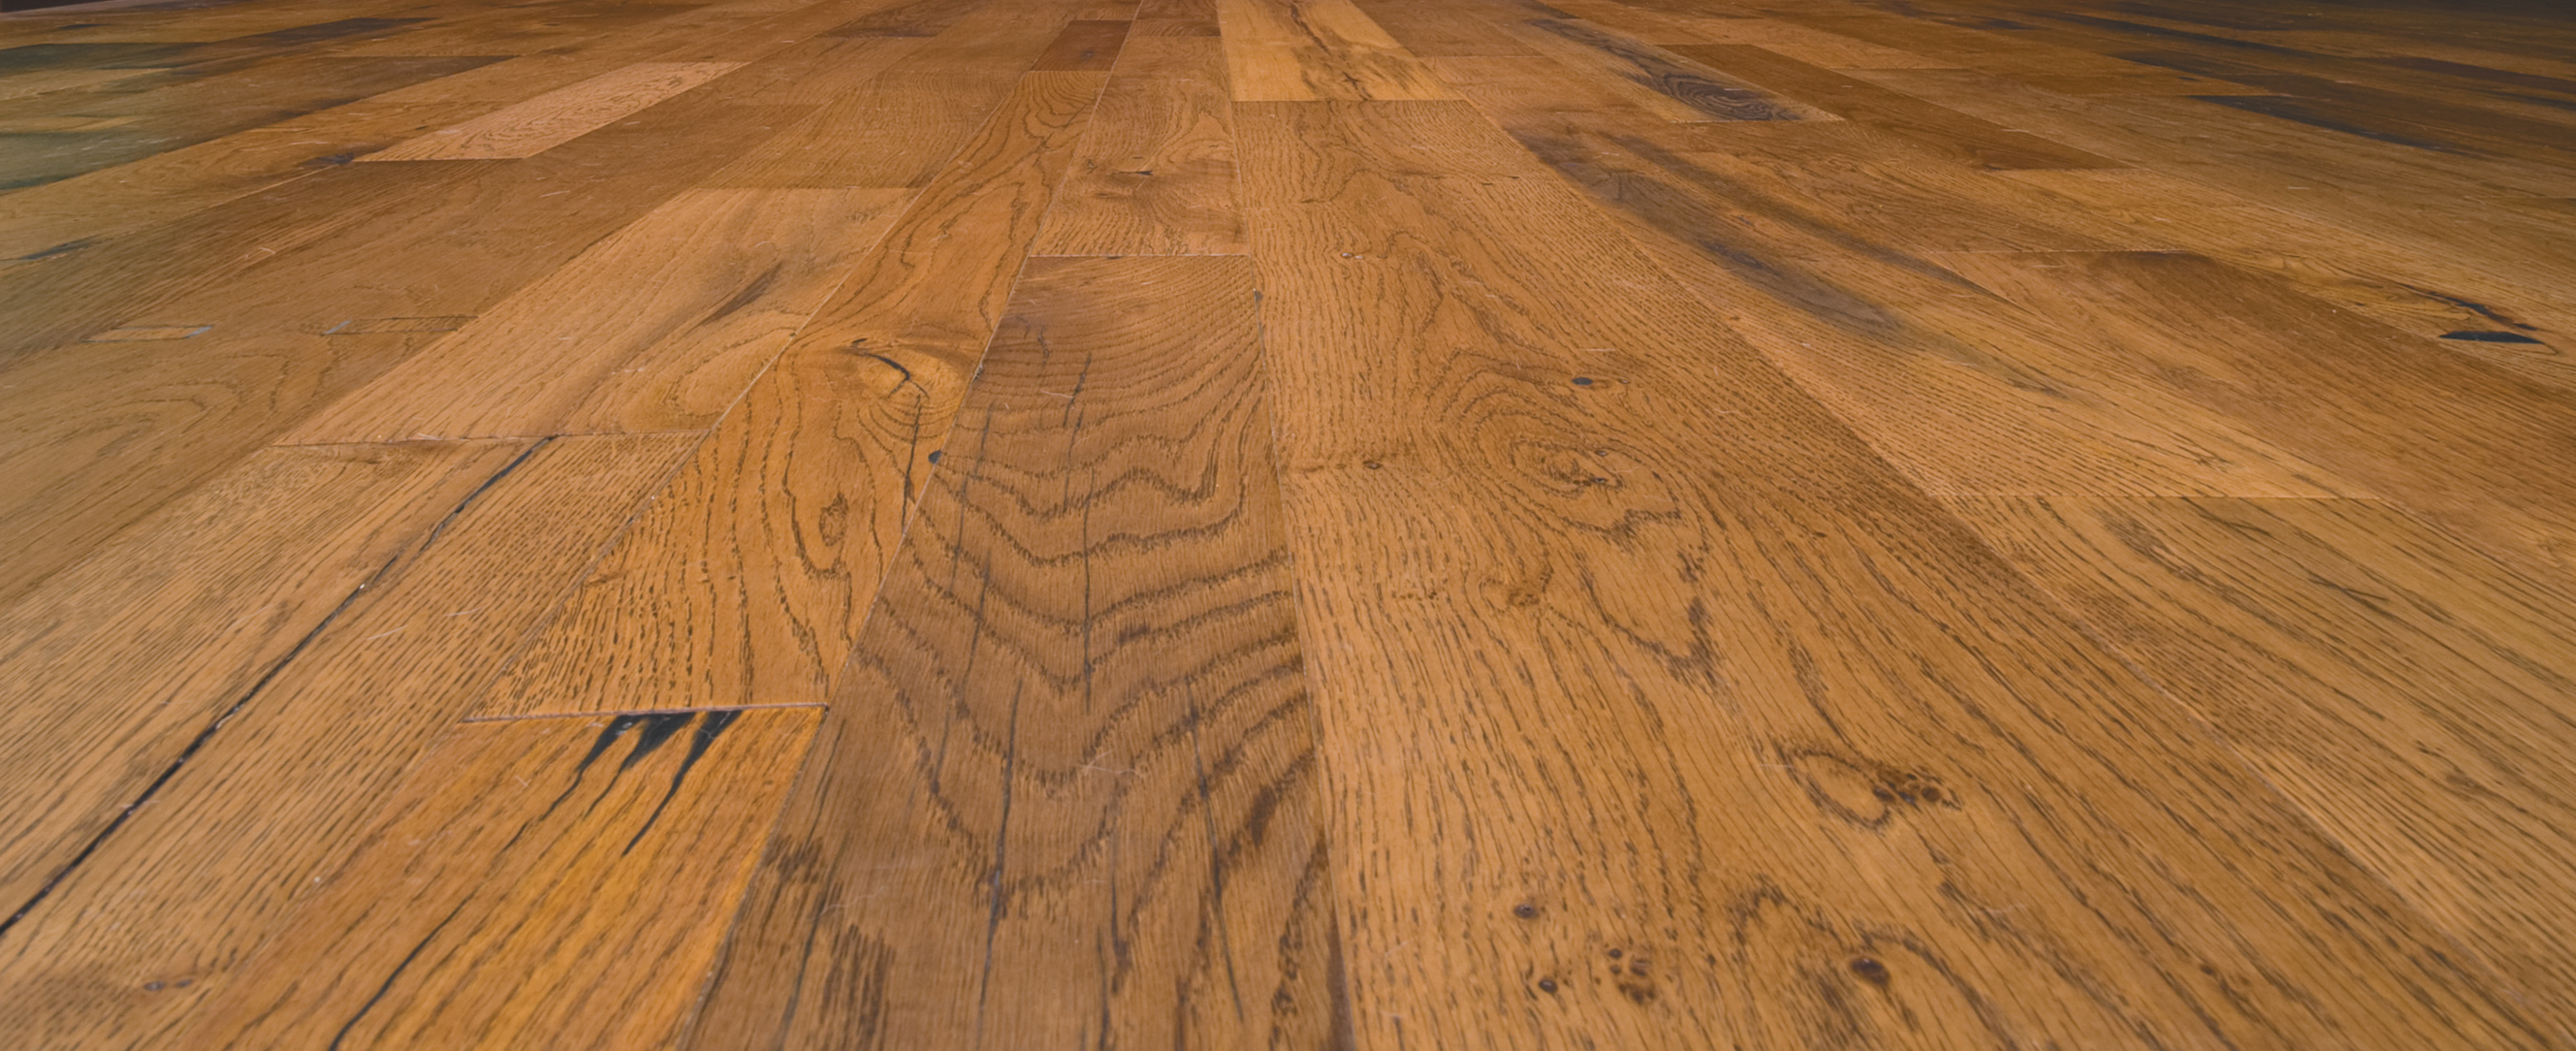 antique oak flooring with a rich patina from stout beer from the original Guinness brewery